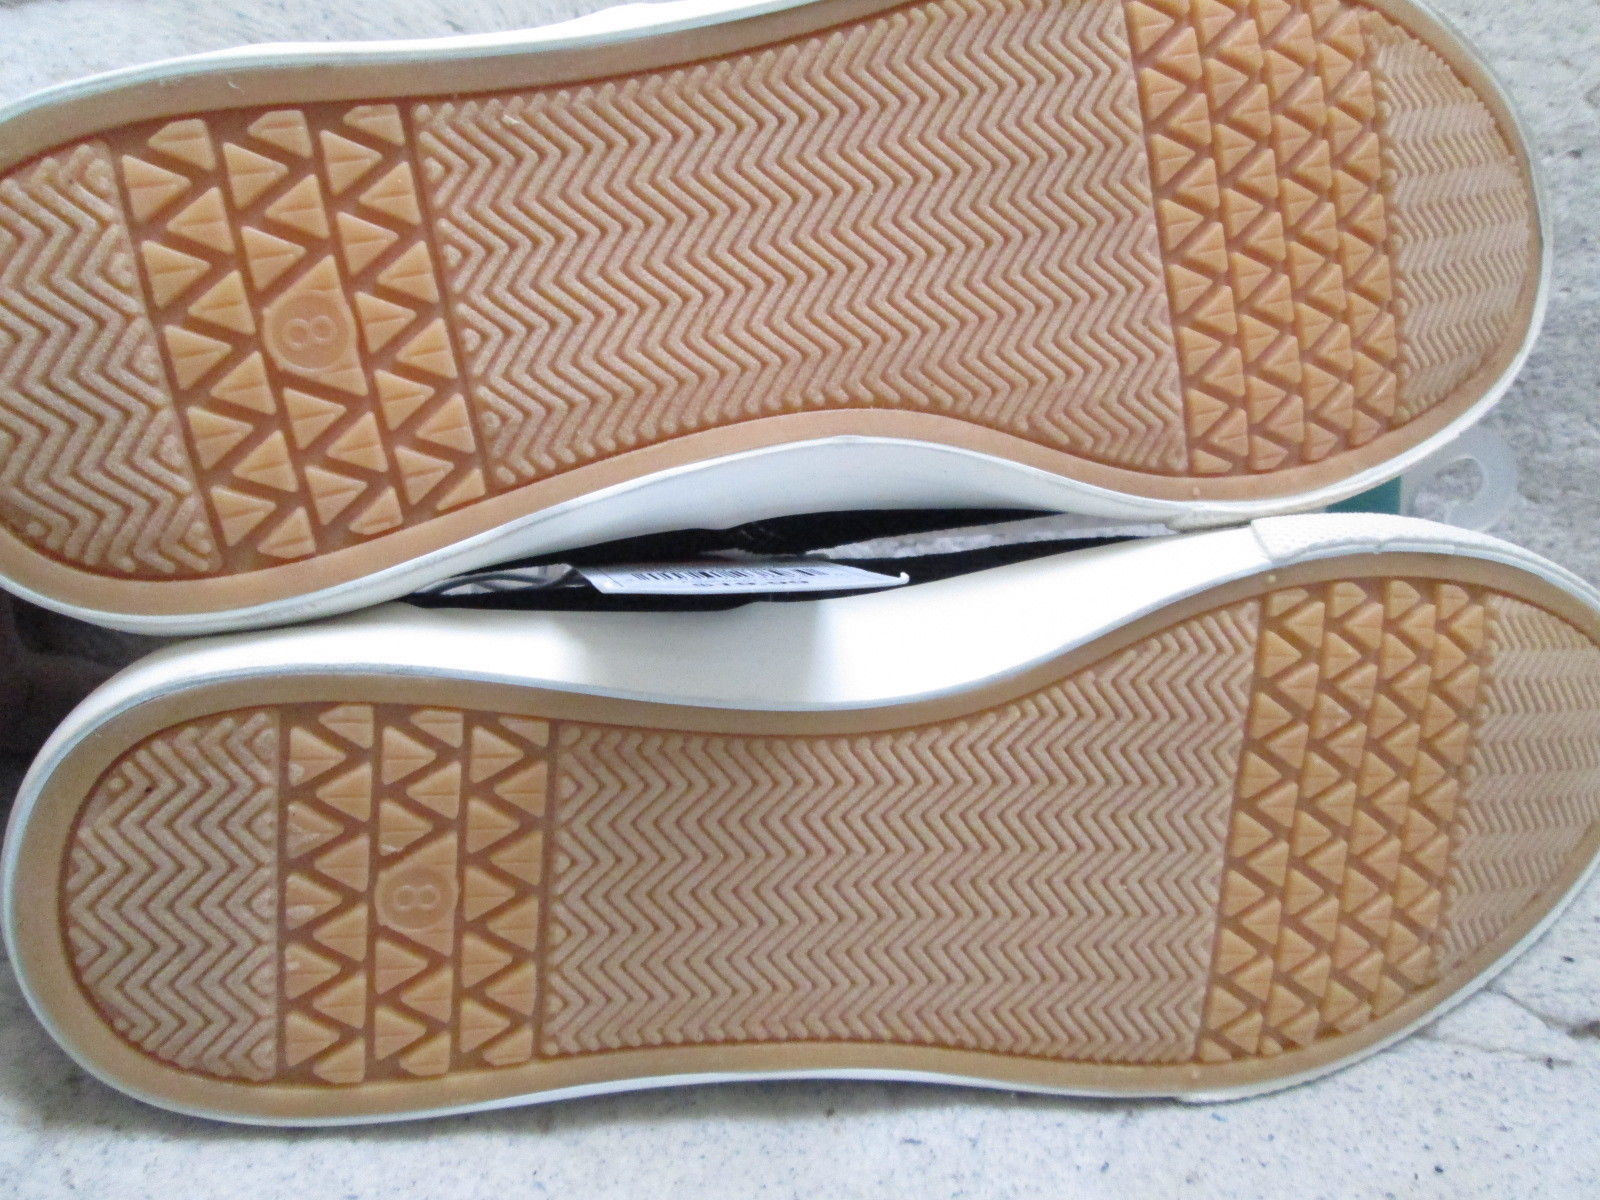 Women Savannah Corduroy Sneakers by Mossimo Supply co. Size 8